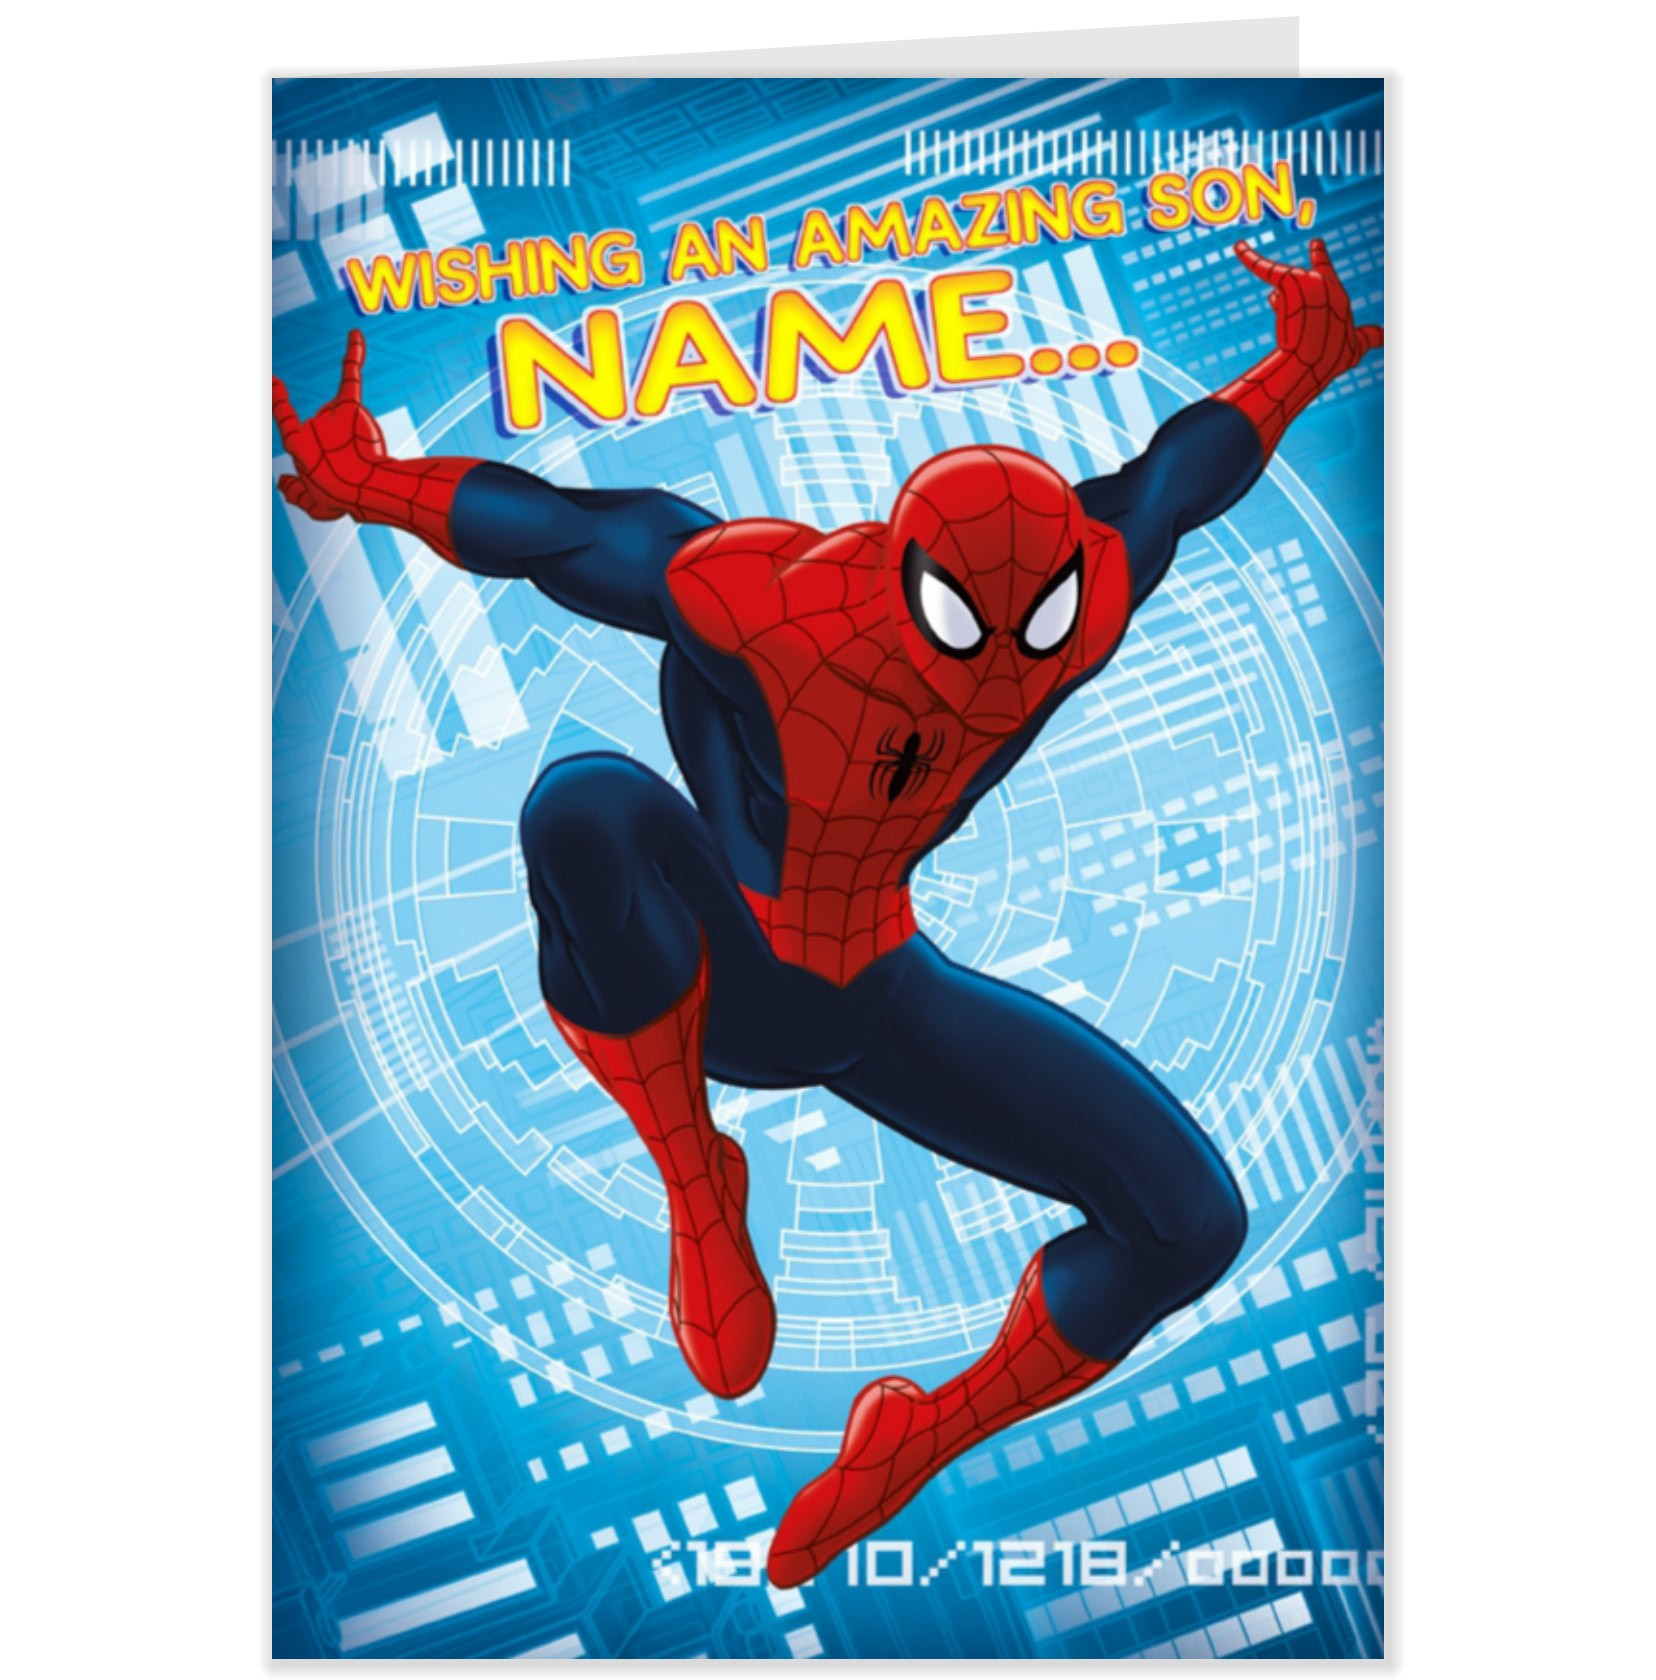 spiderman birthday poster ; superman-birthday-card-template-awesome-birthday-card-colorful-and-interesting-design-spiderman-birthday-of-superman-birthday-card-template